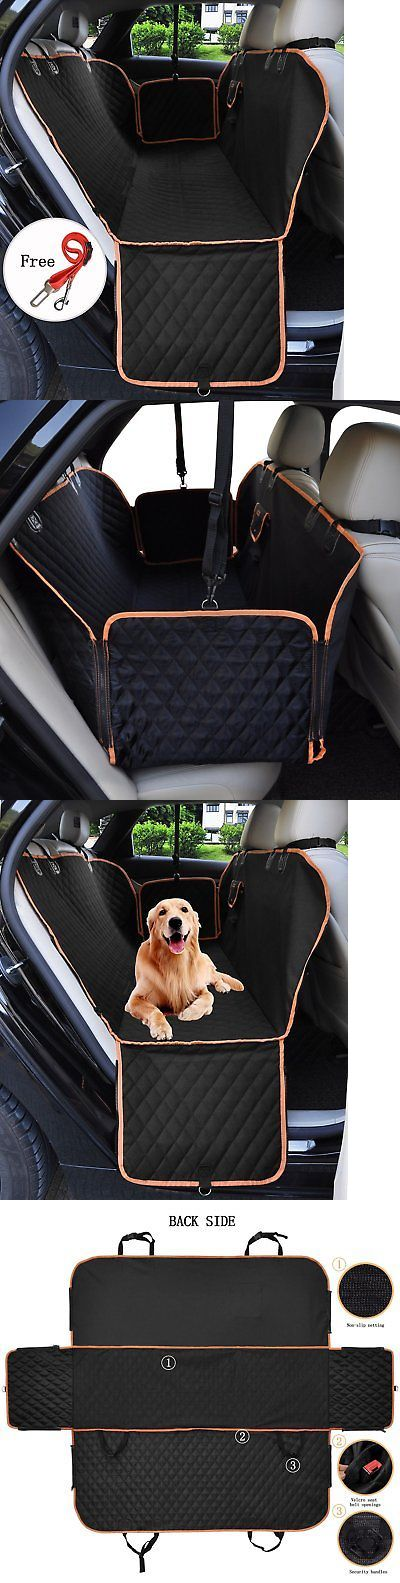 Car Seat Covers 117426: Pet Seat For Car Dog Seat Cover Waterproof Hammock Pet Seat Covers Heavy Duty And -> BUY IT NOW ONLY: $32.24 on eBay!